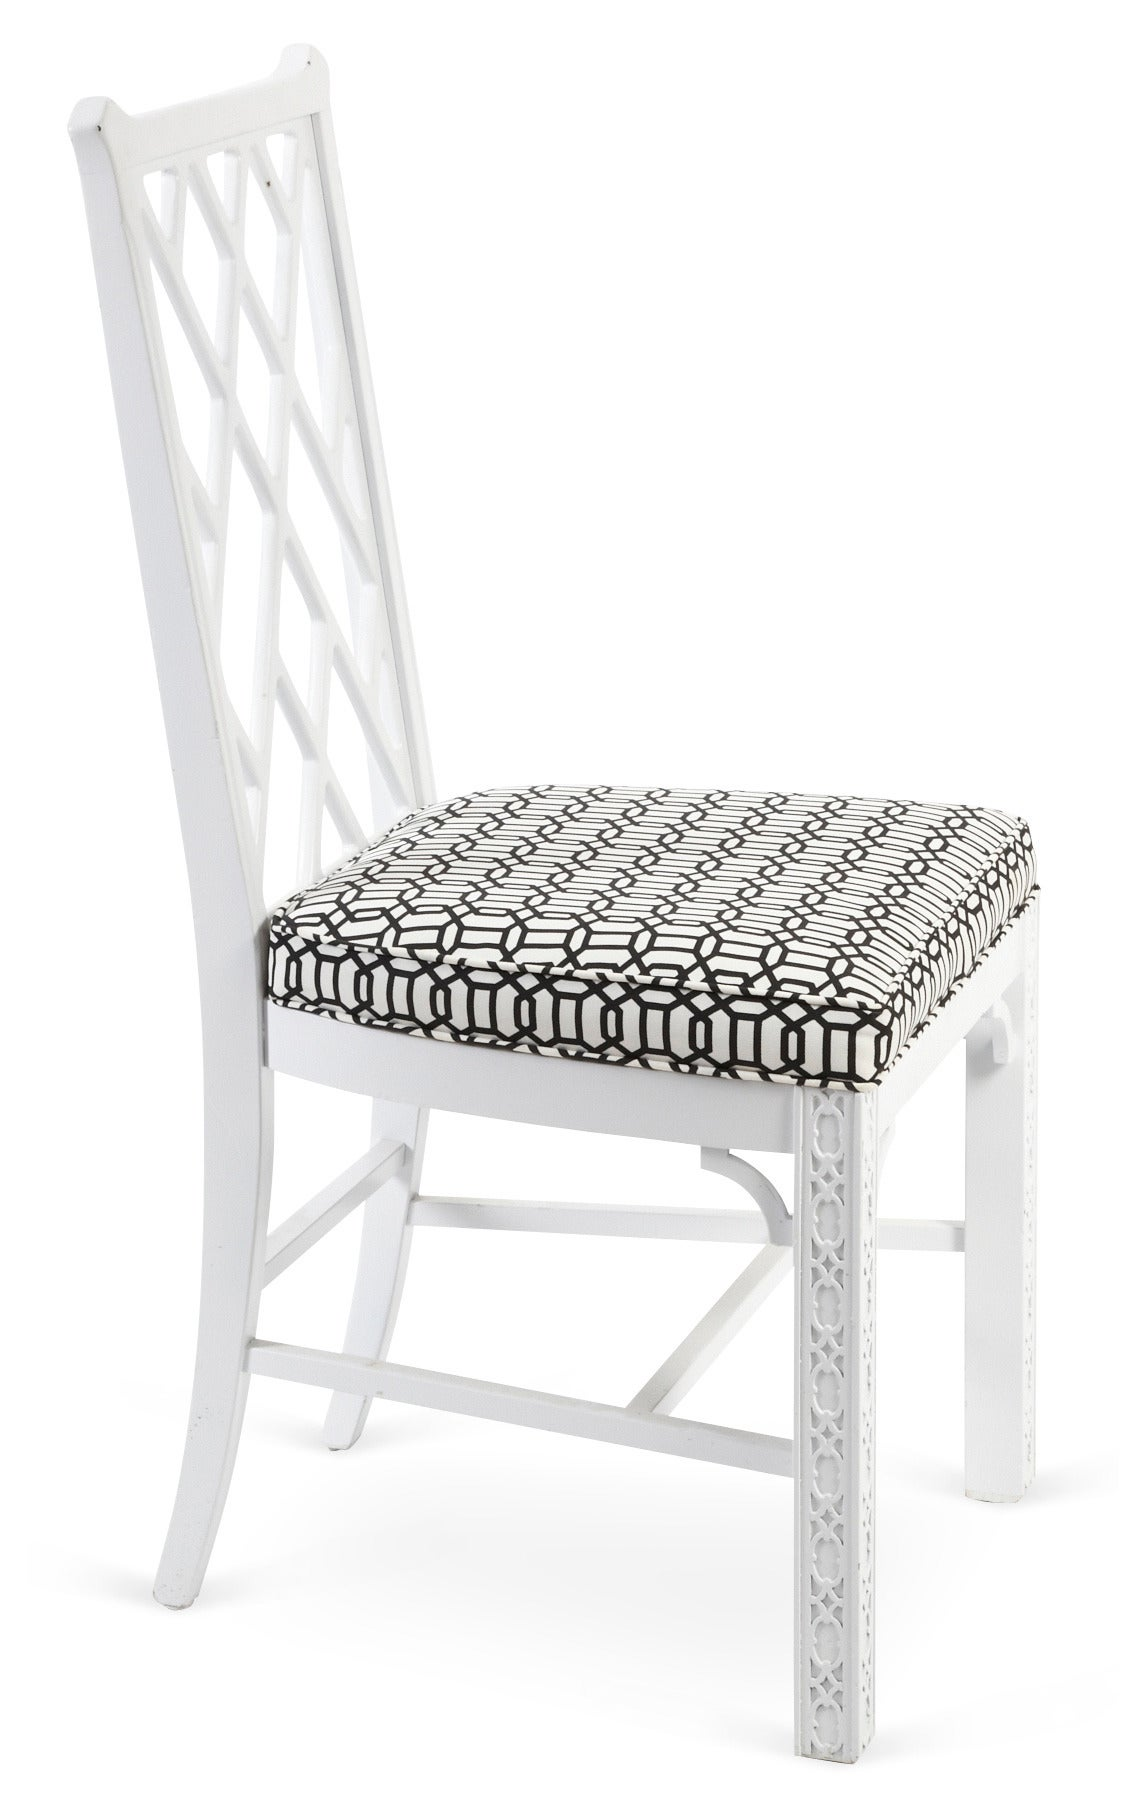 Pair of vintage side chairs with fretwork-style backs. Legs have stunning carved incised detailing. Black-on-white linen seats. Solid construction.